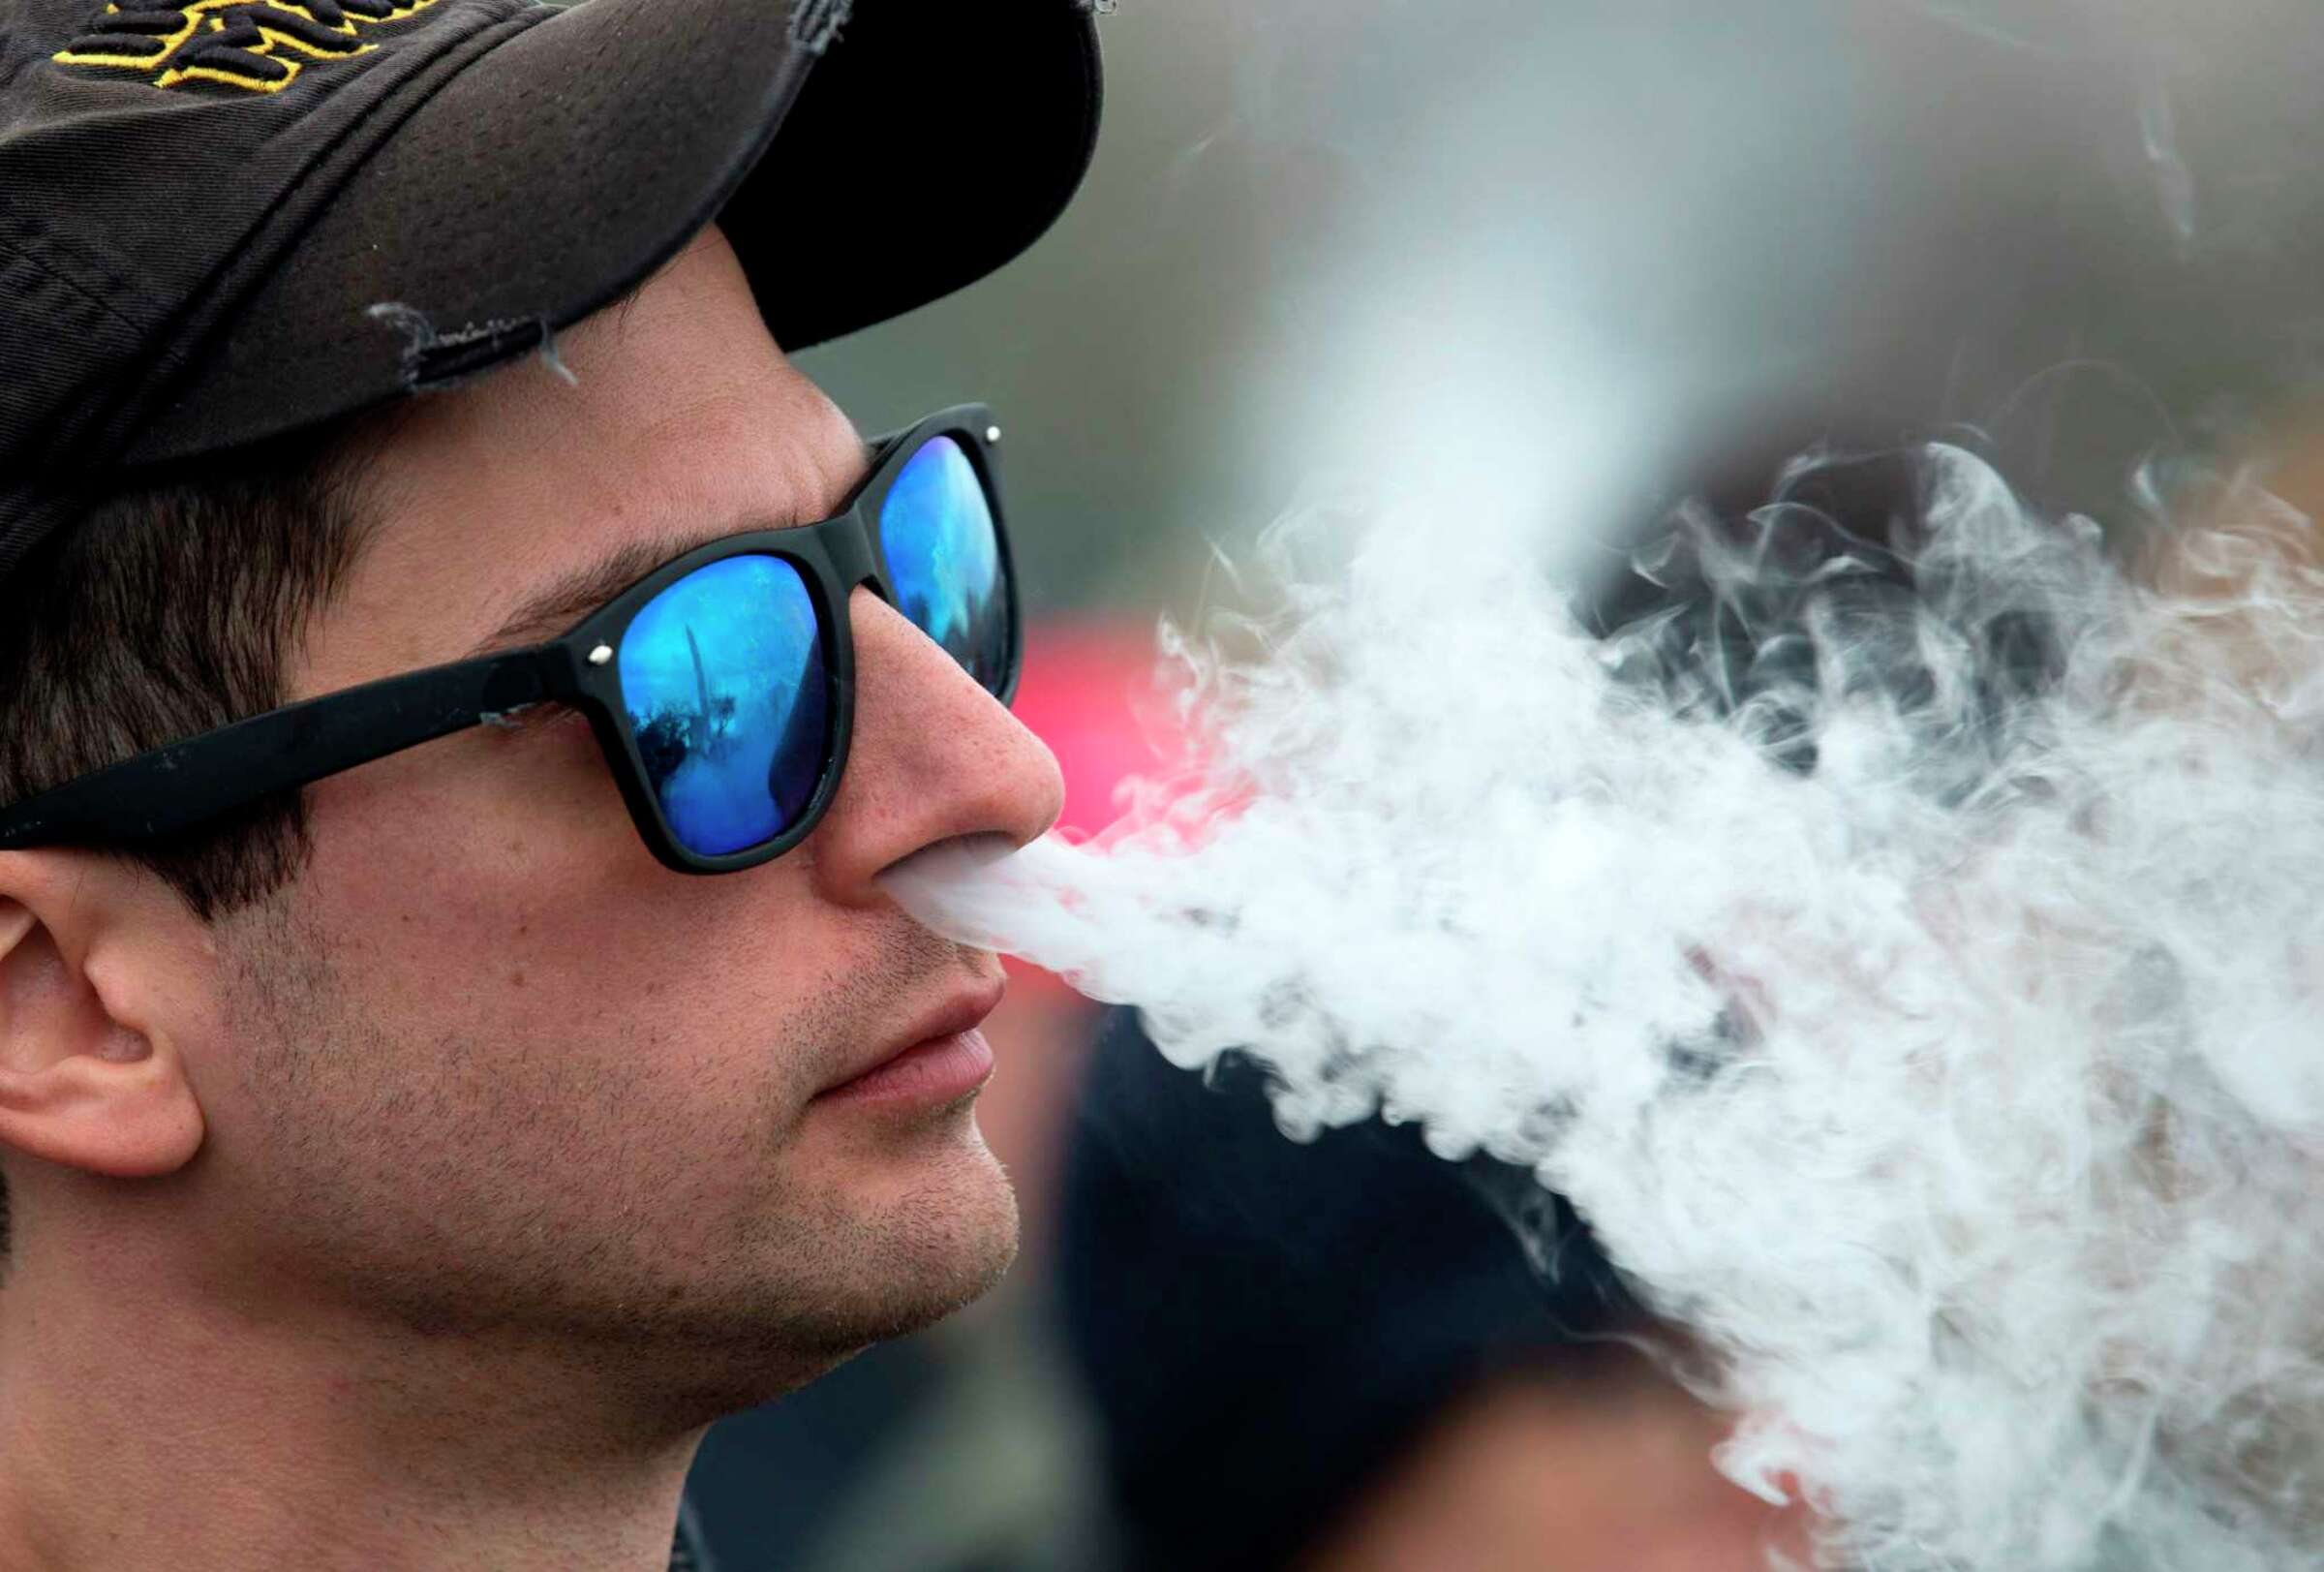 Opinion: Flavor bans won't fight tobacco or improve health